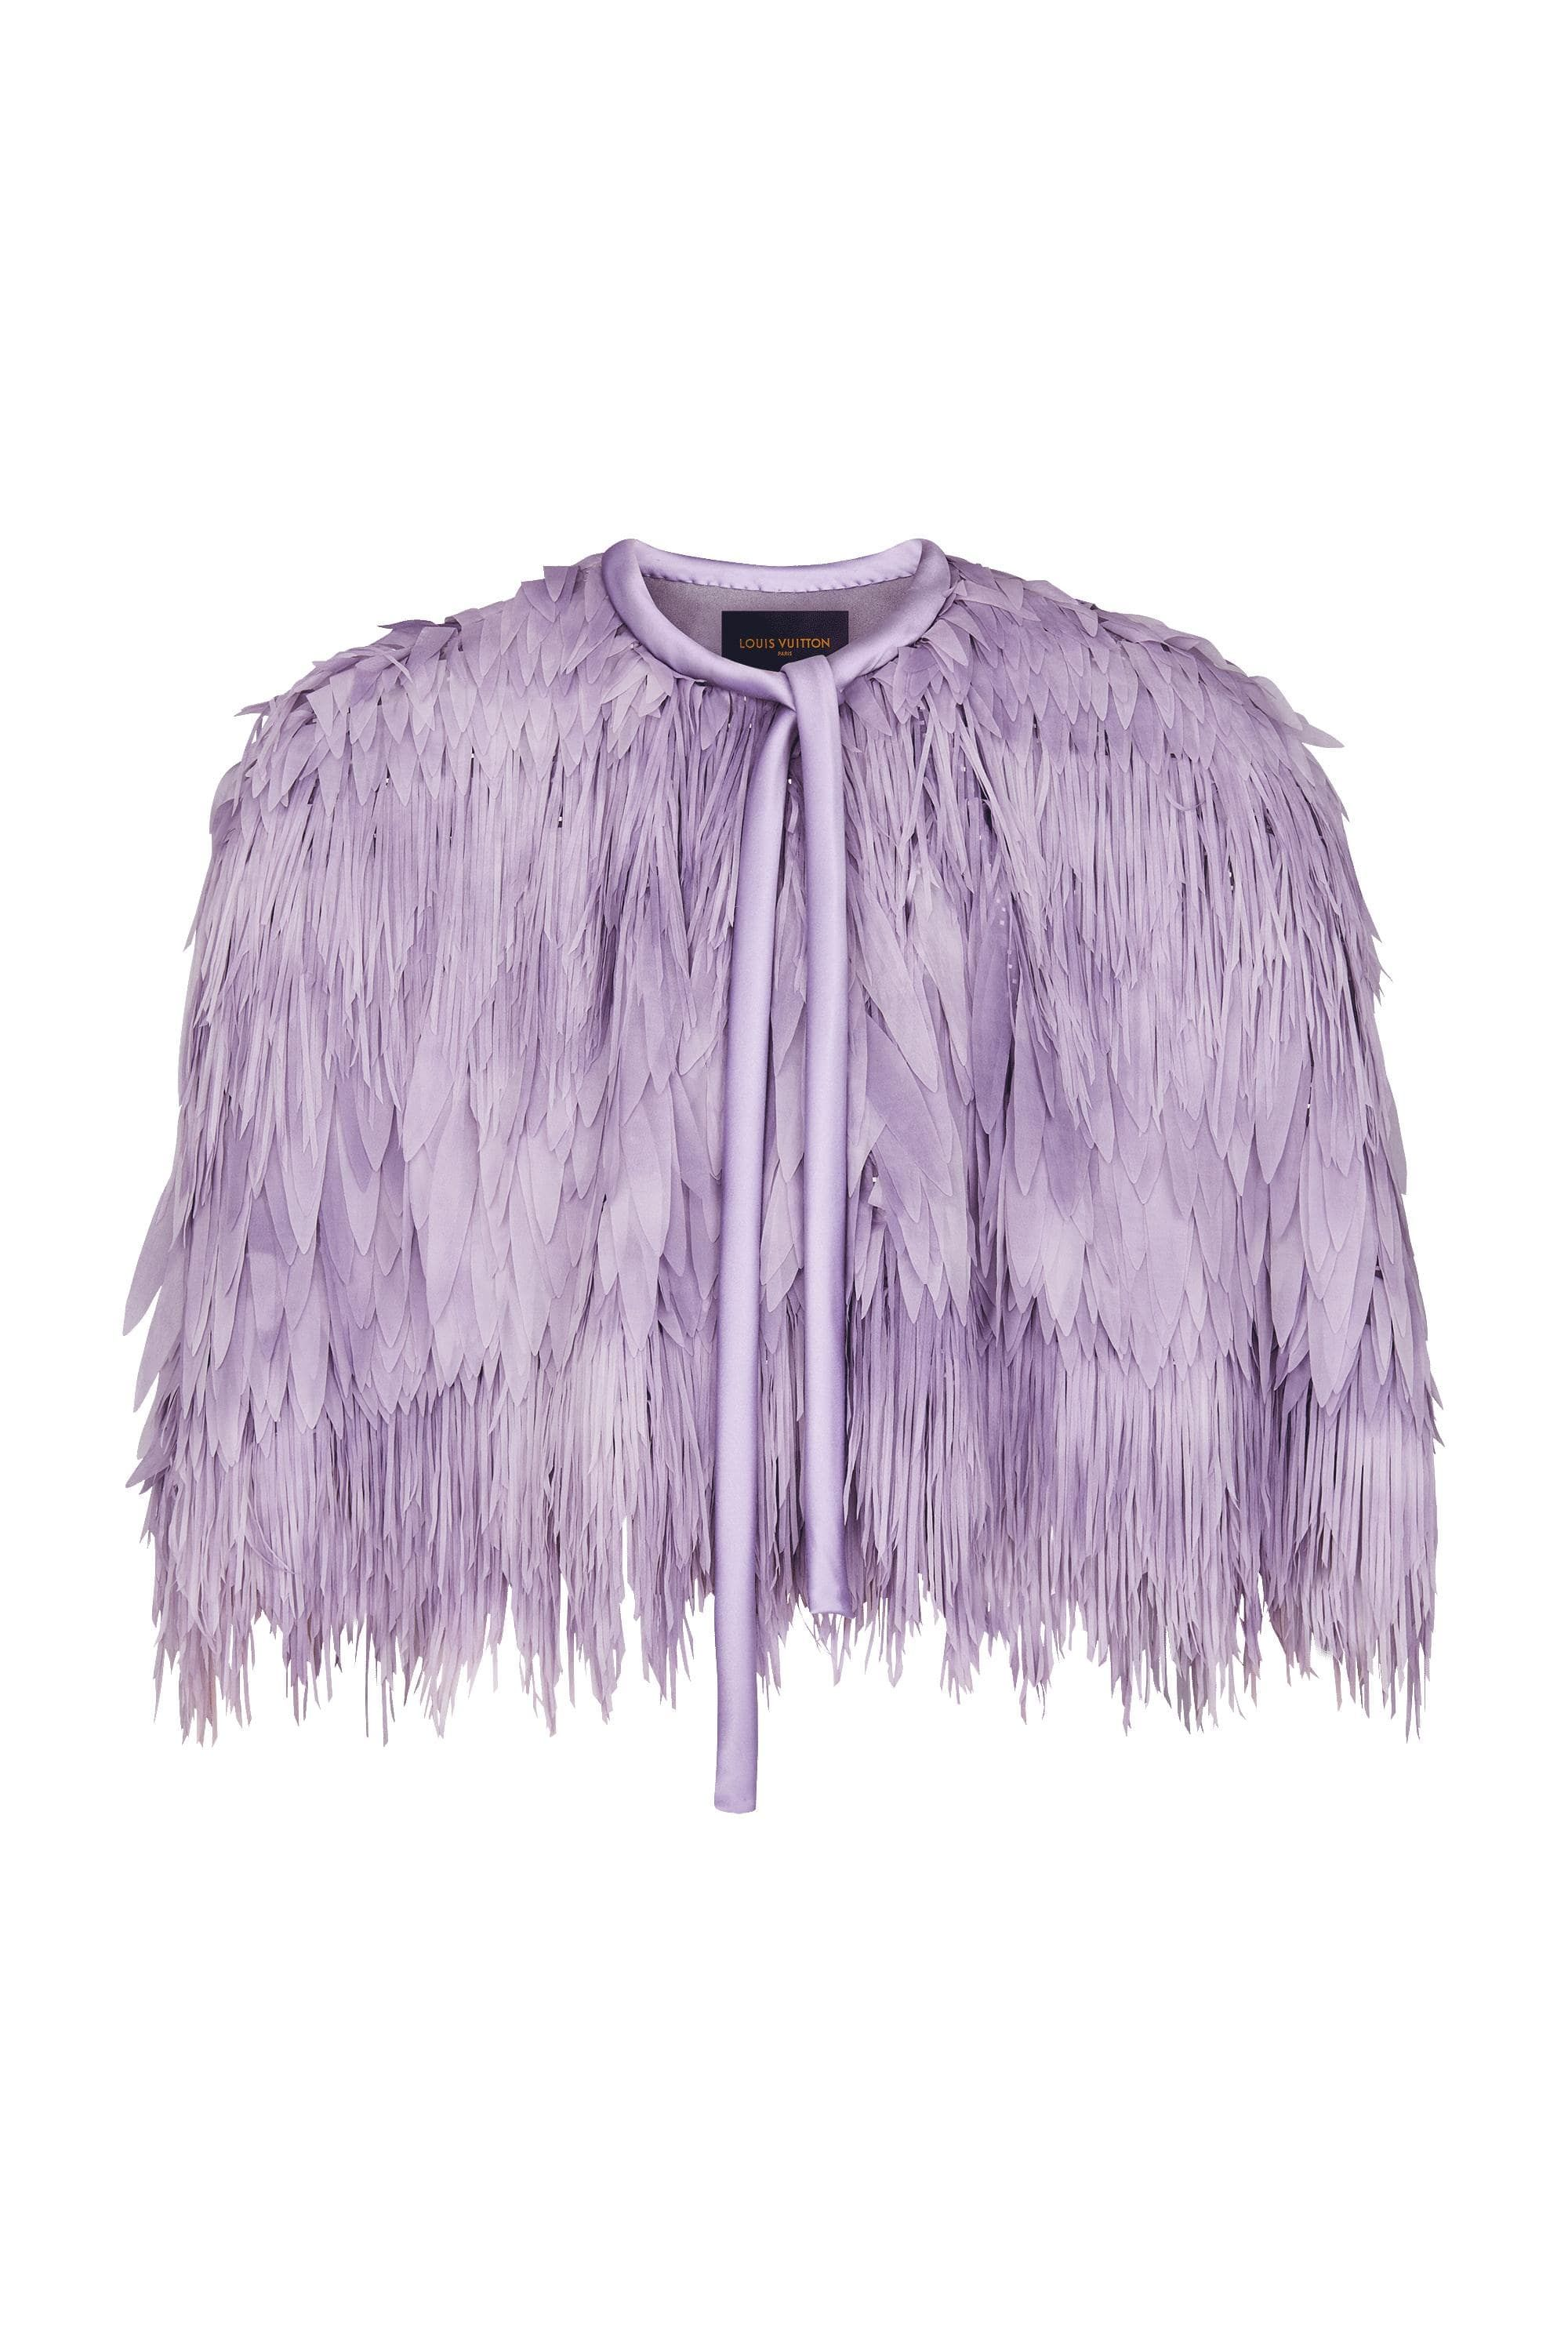 b3522efa30 Embroidered Short Cape - Ready-to-Wear | LOUIS VUITTON | Louis ...